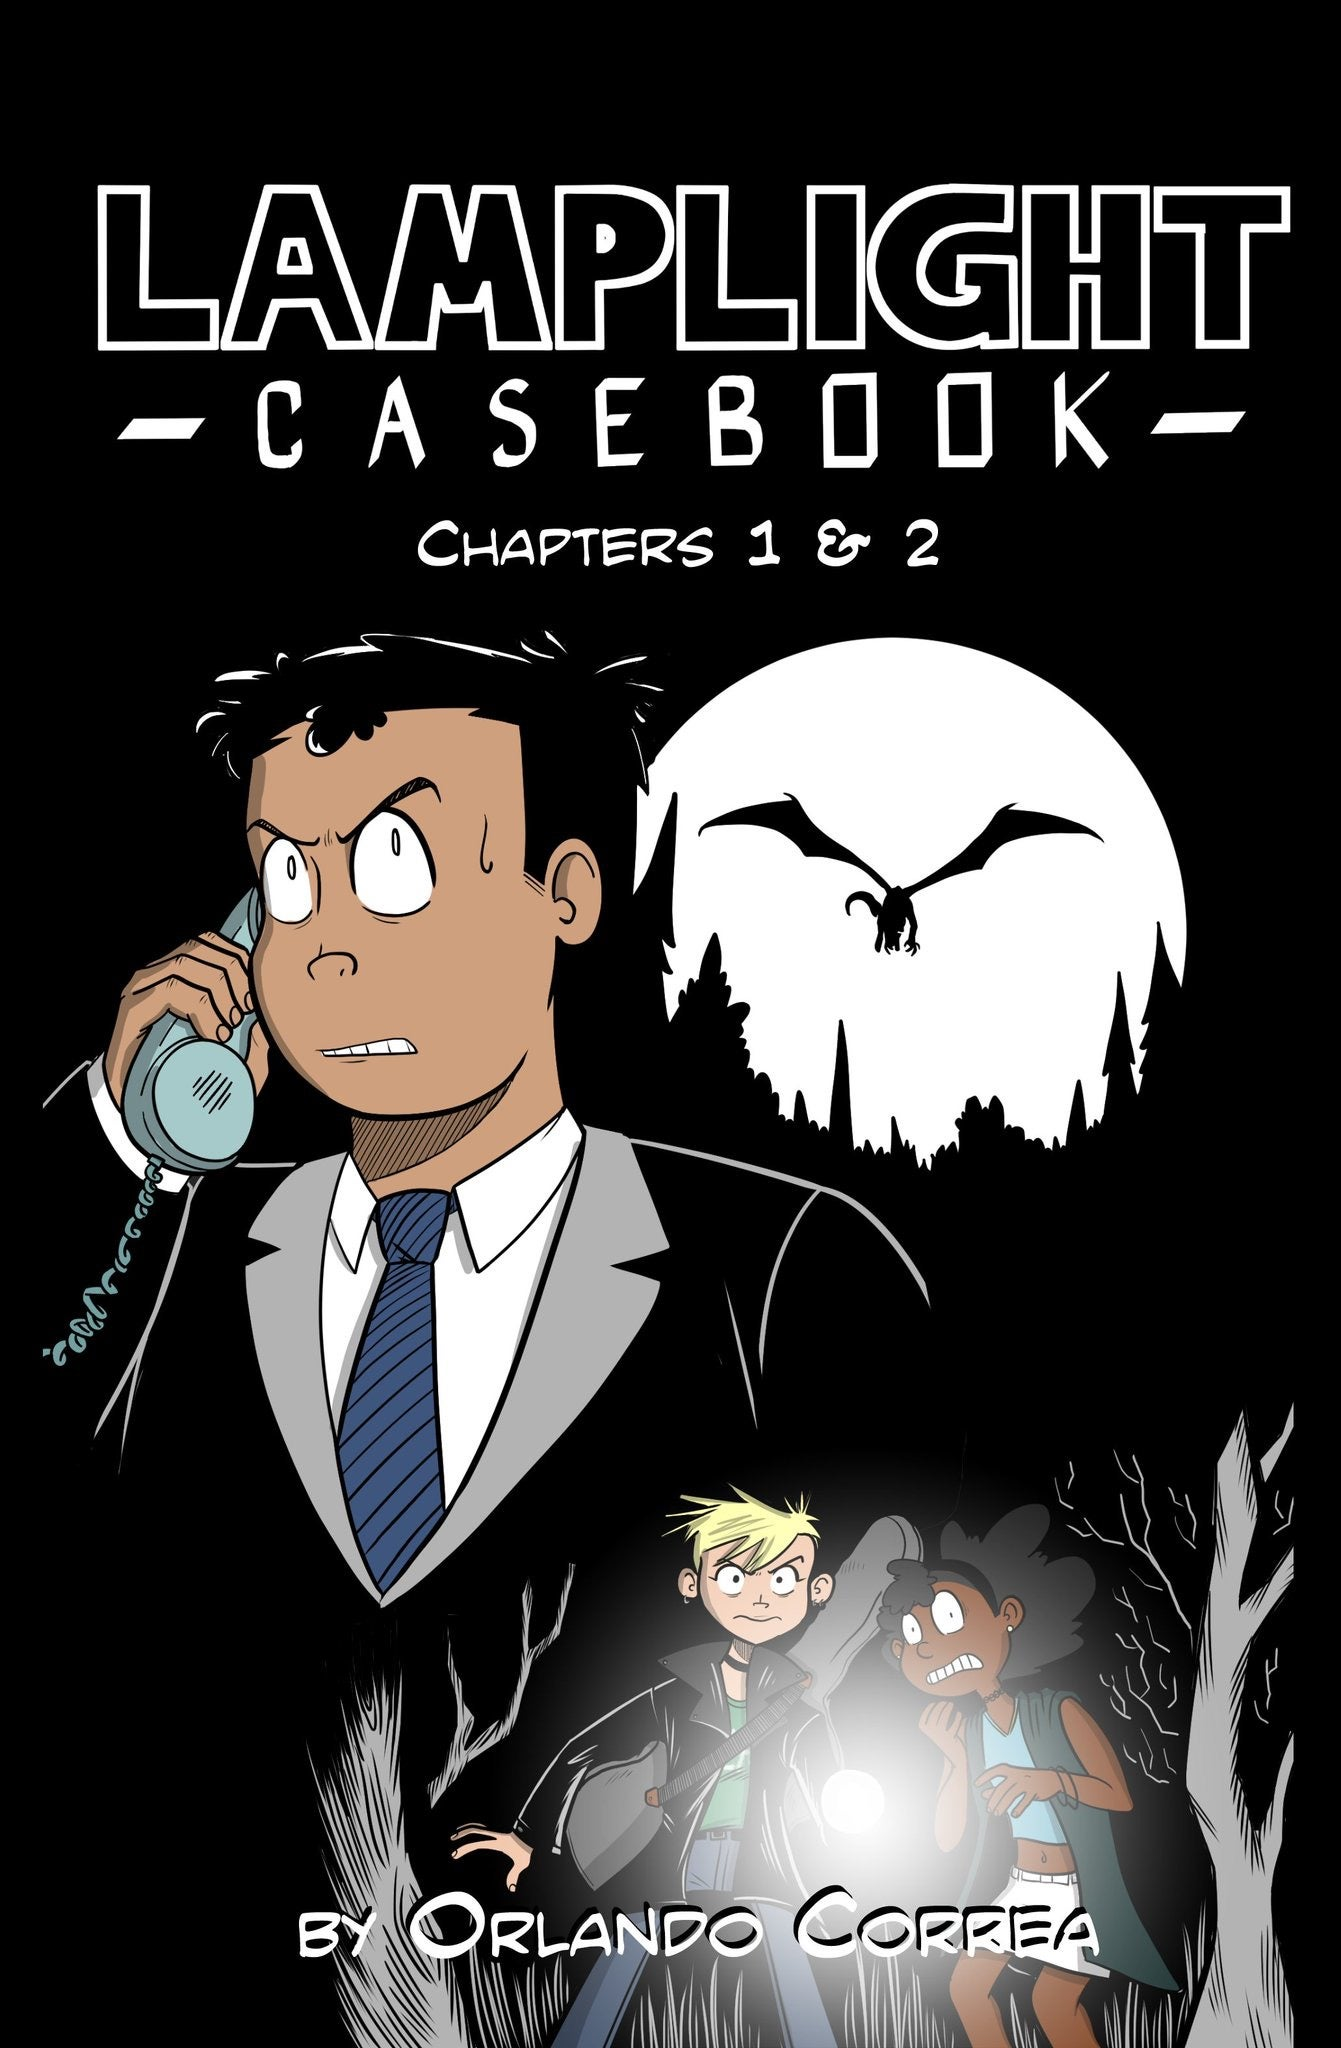 Image of Lamplight Casebook: Chapters 1 & 2